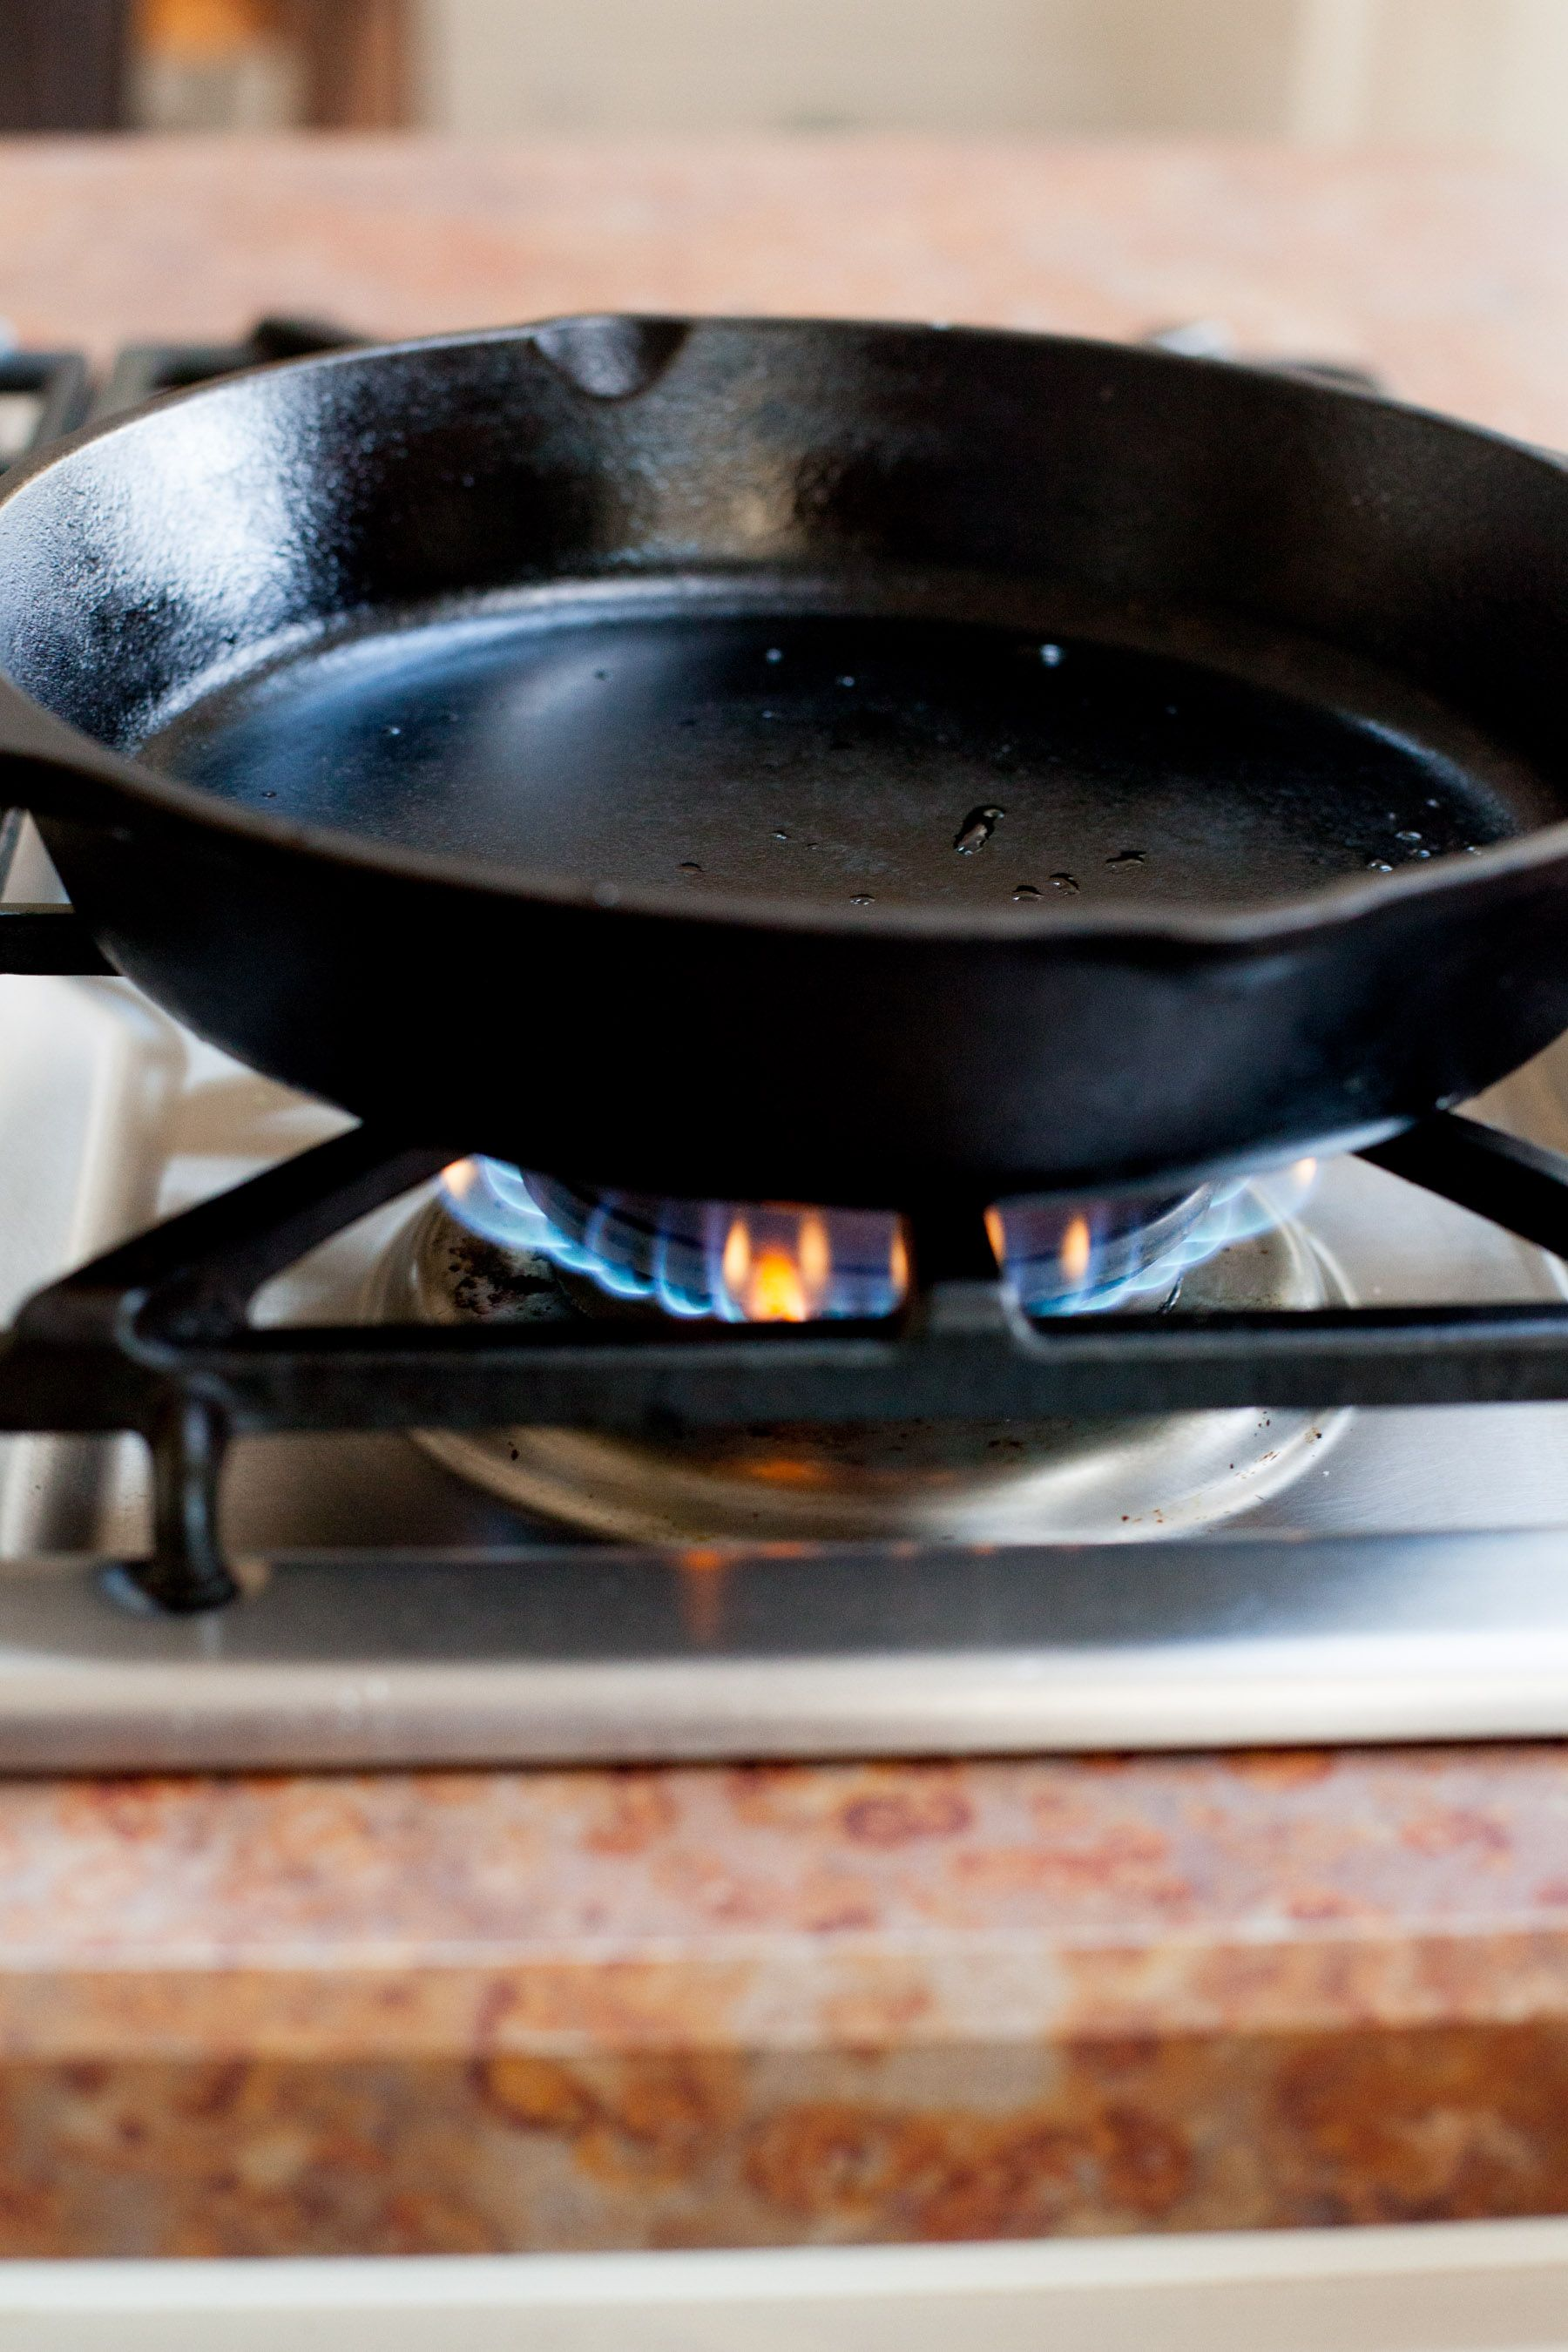 Cast Iron Skillet Use On Gl Top Stove Read More Info By Clicking The Link Image Electricskillets